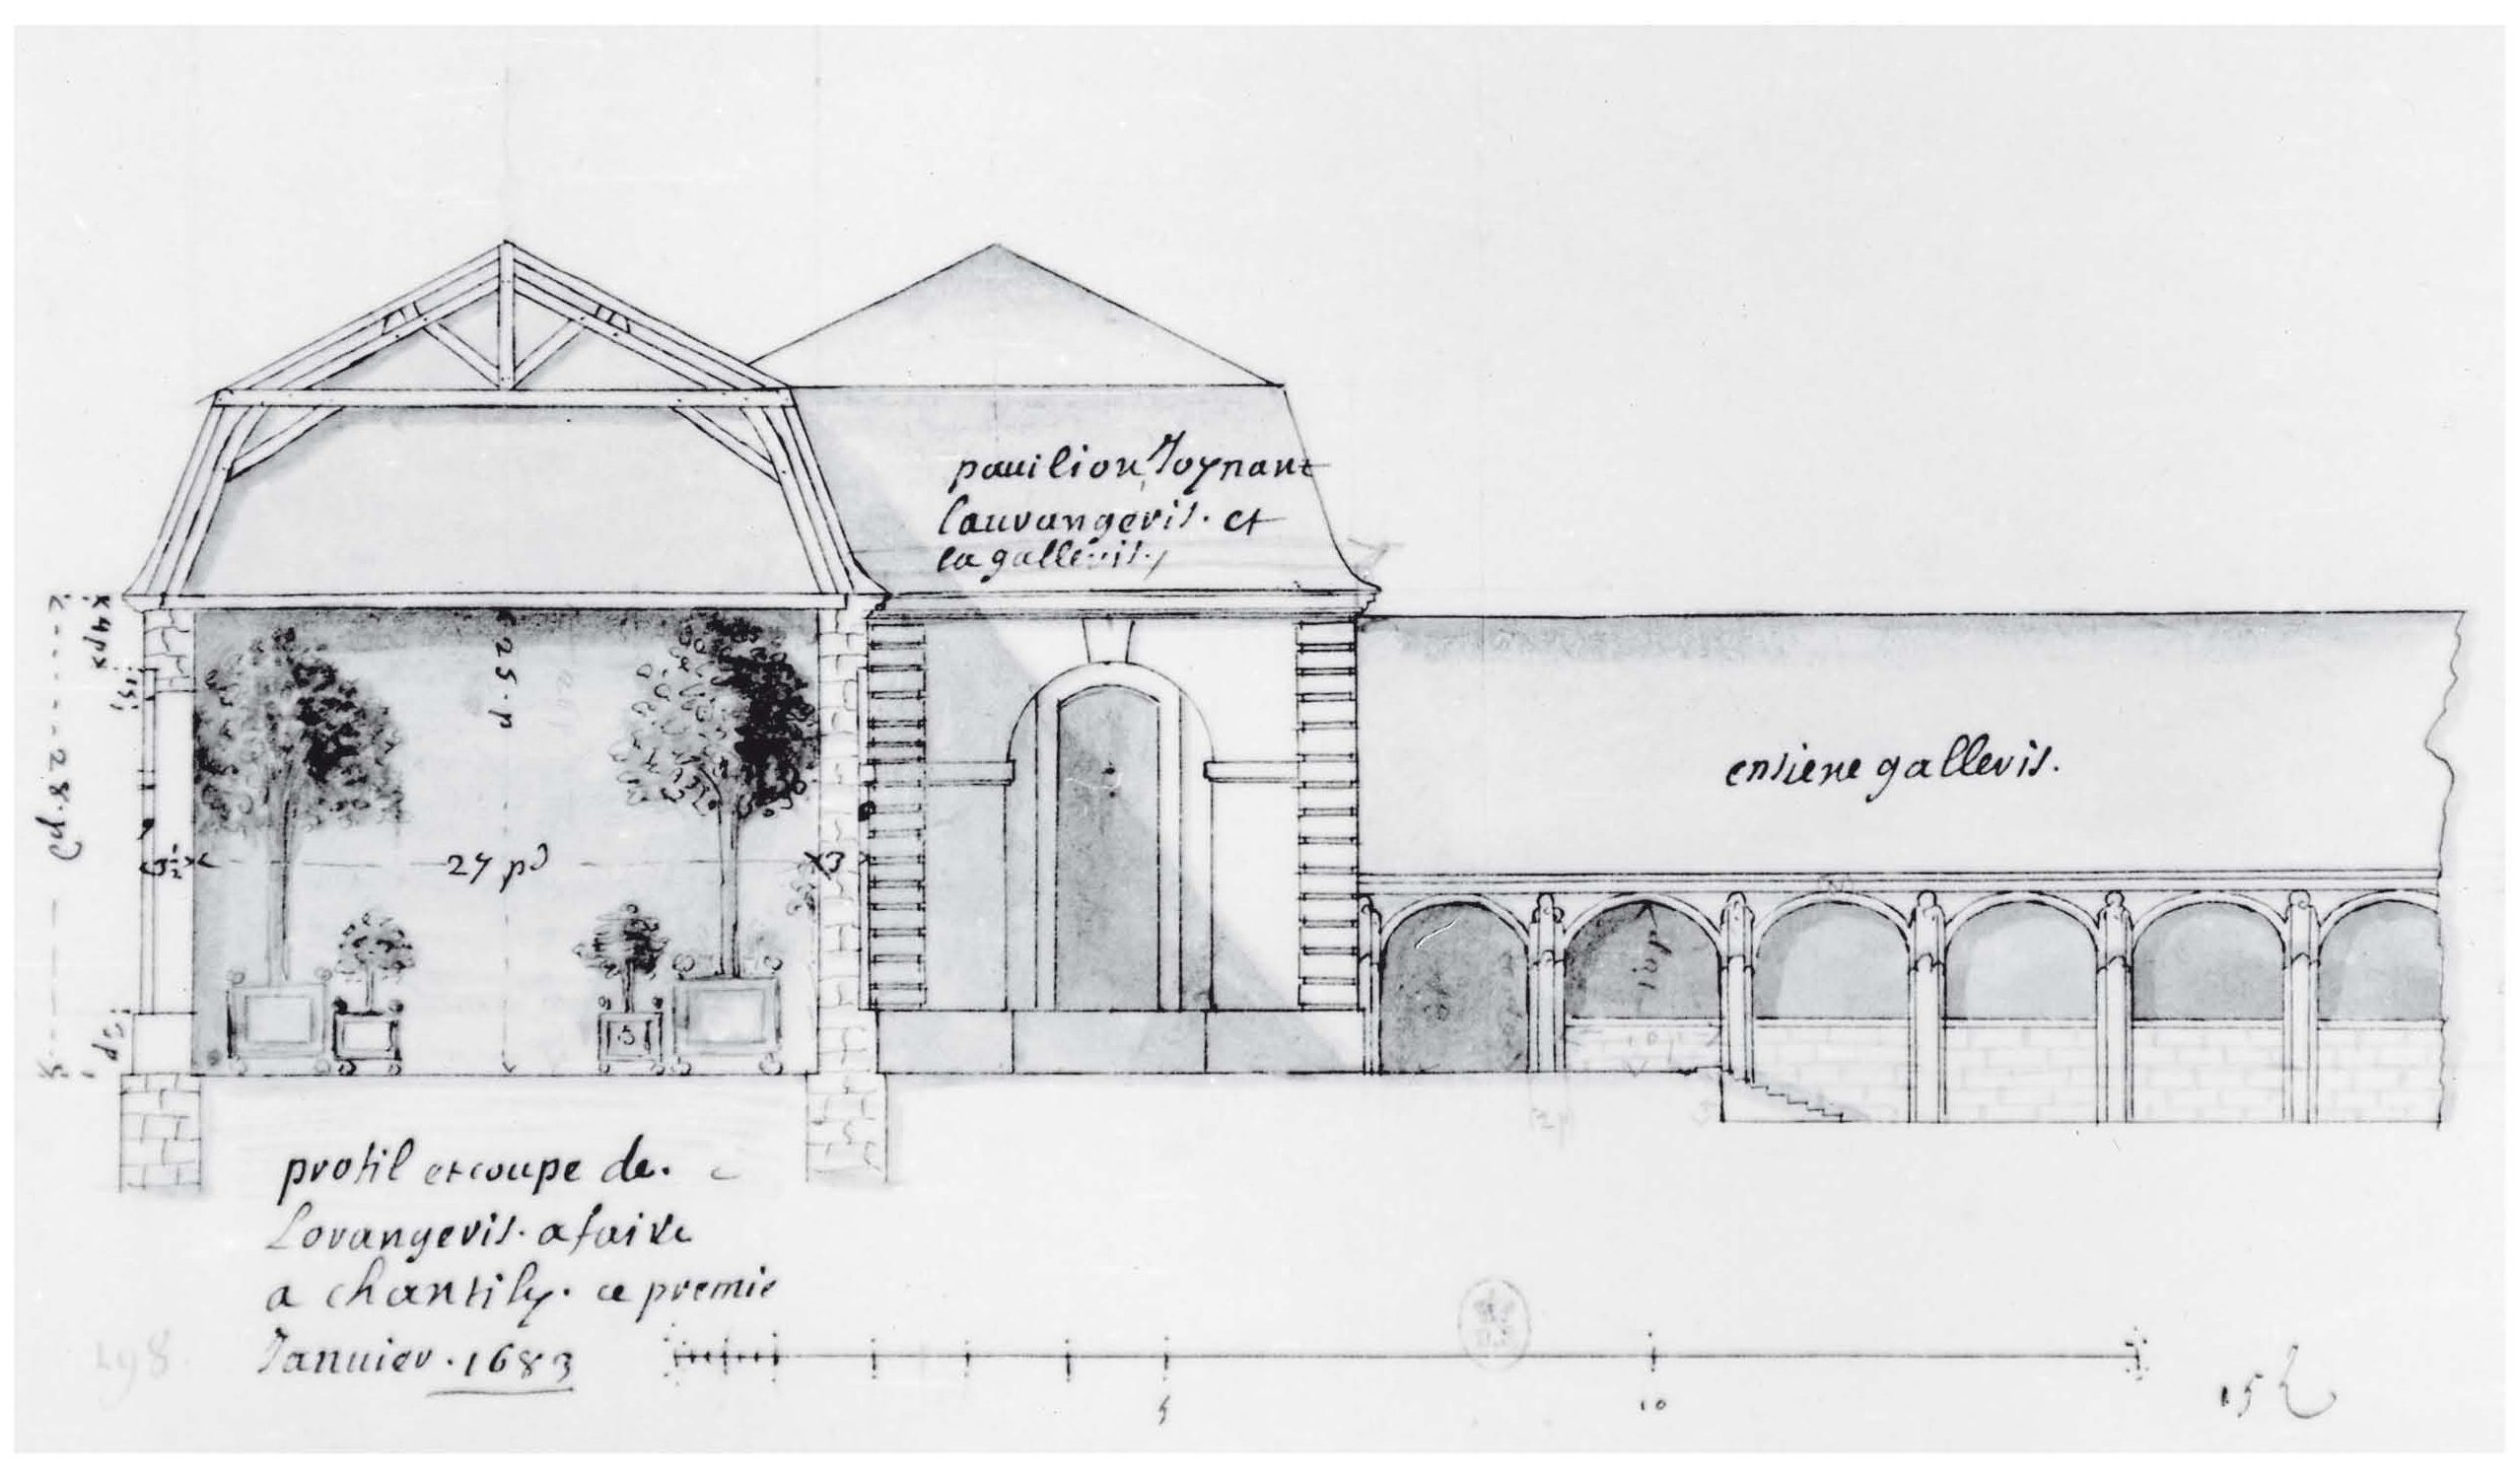 J h mansard dessin en coupe architectural drawings - Dessin en coupe ...